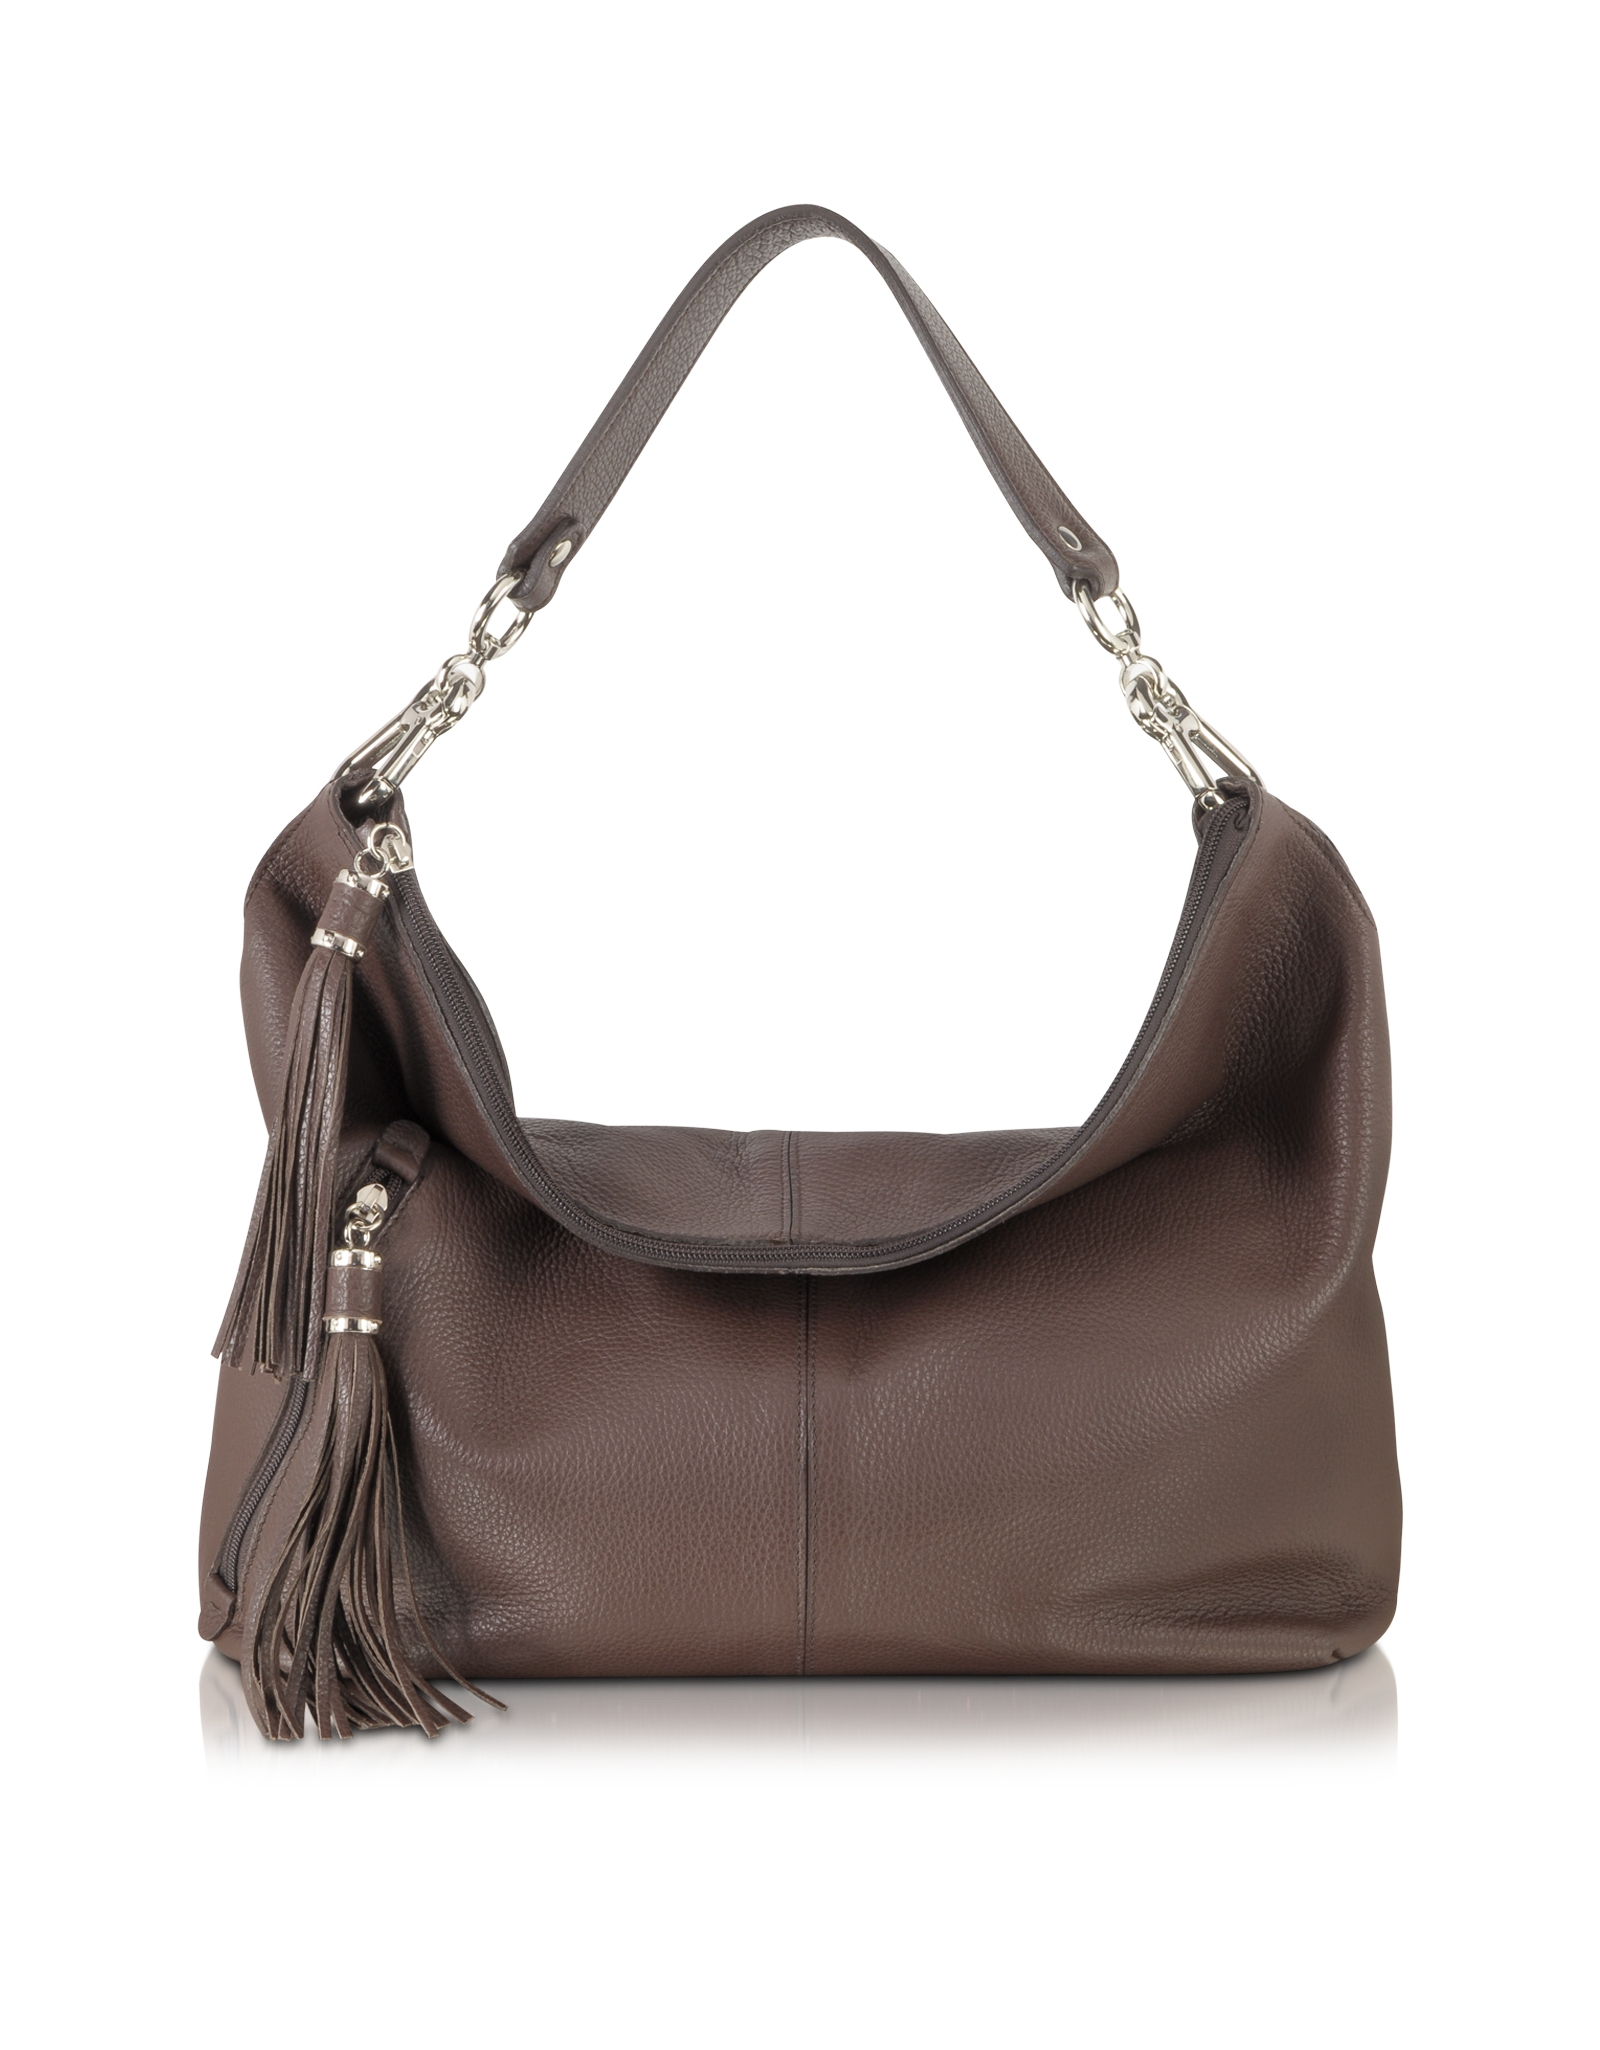 Dark Brown Leather Shoulder Bag Pictures to Pin on Pinterest ...